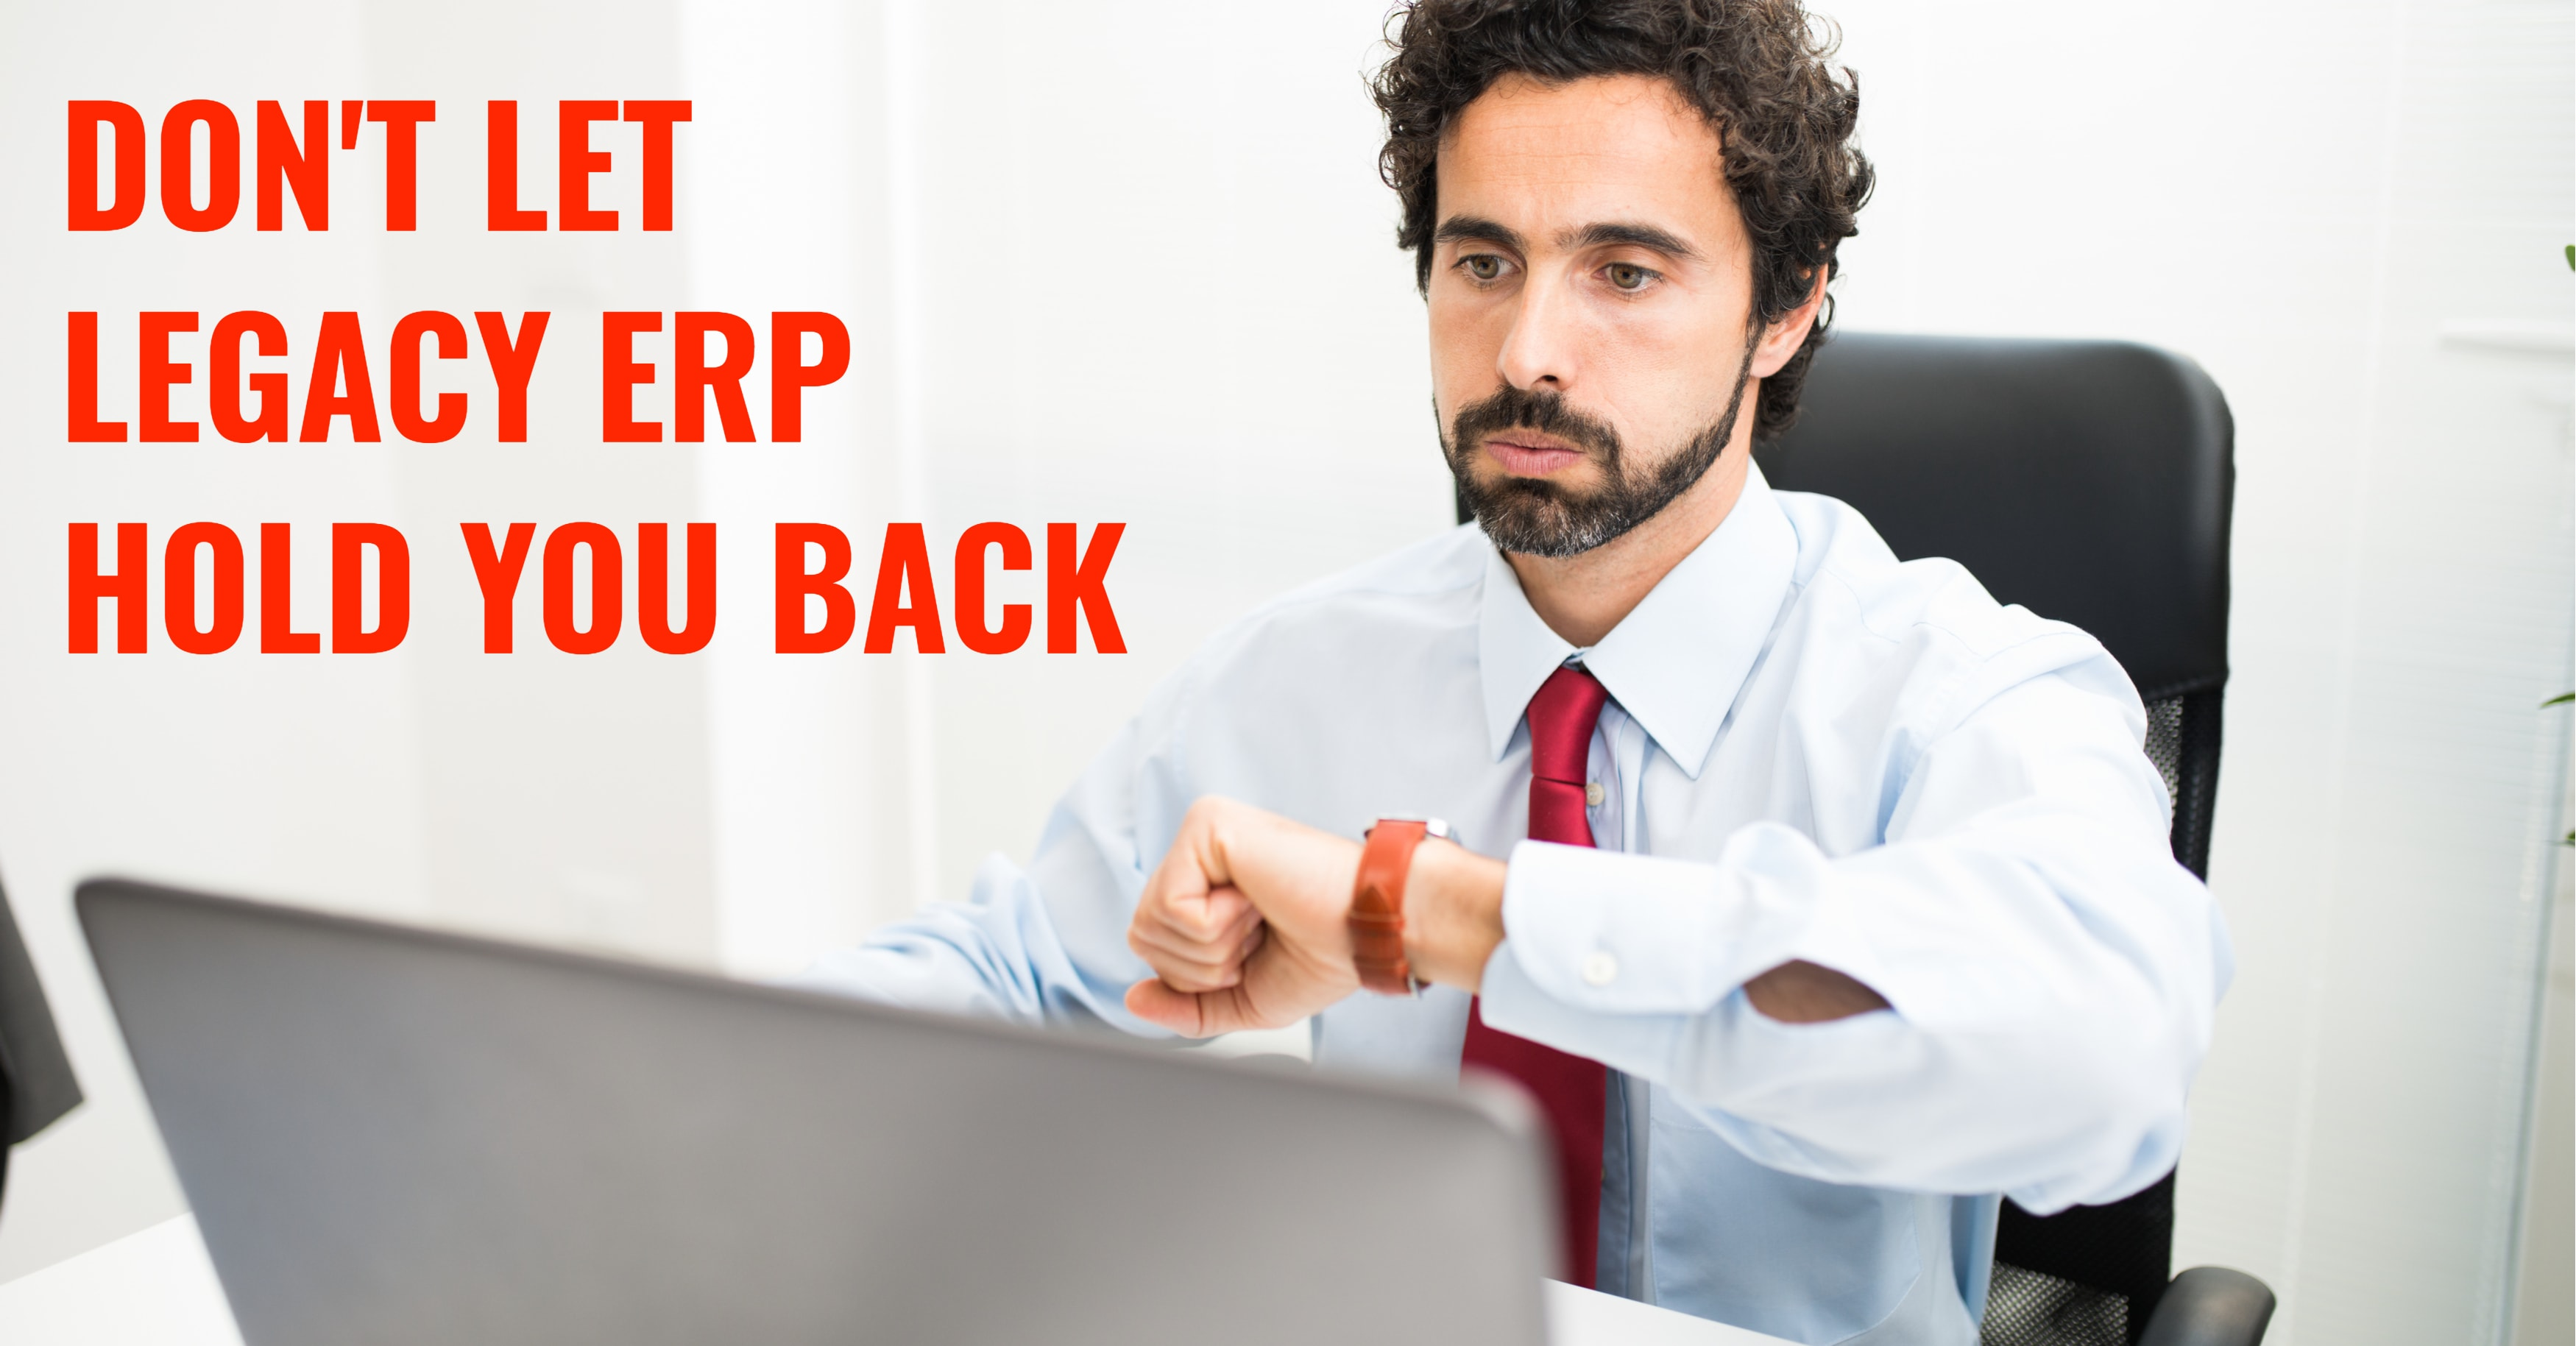 Don't Let Legacy ERP Hold You Back